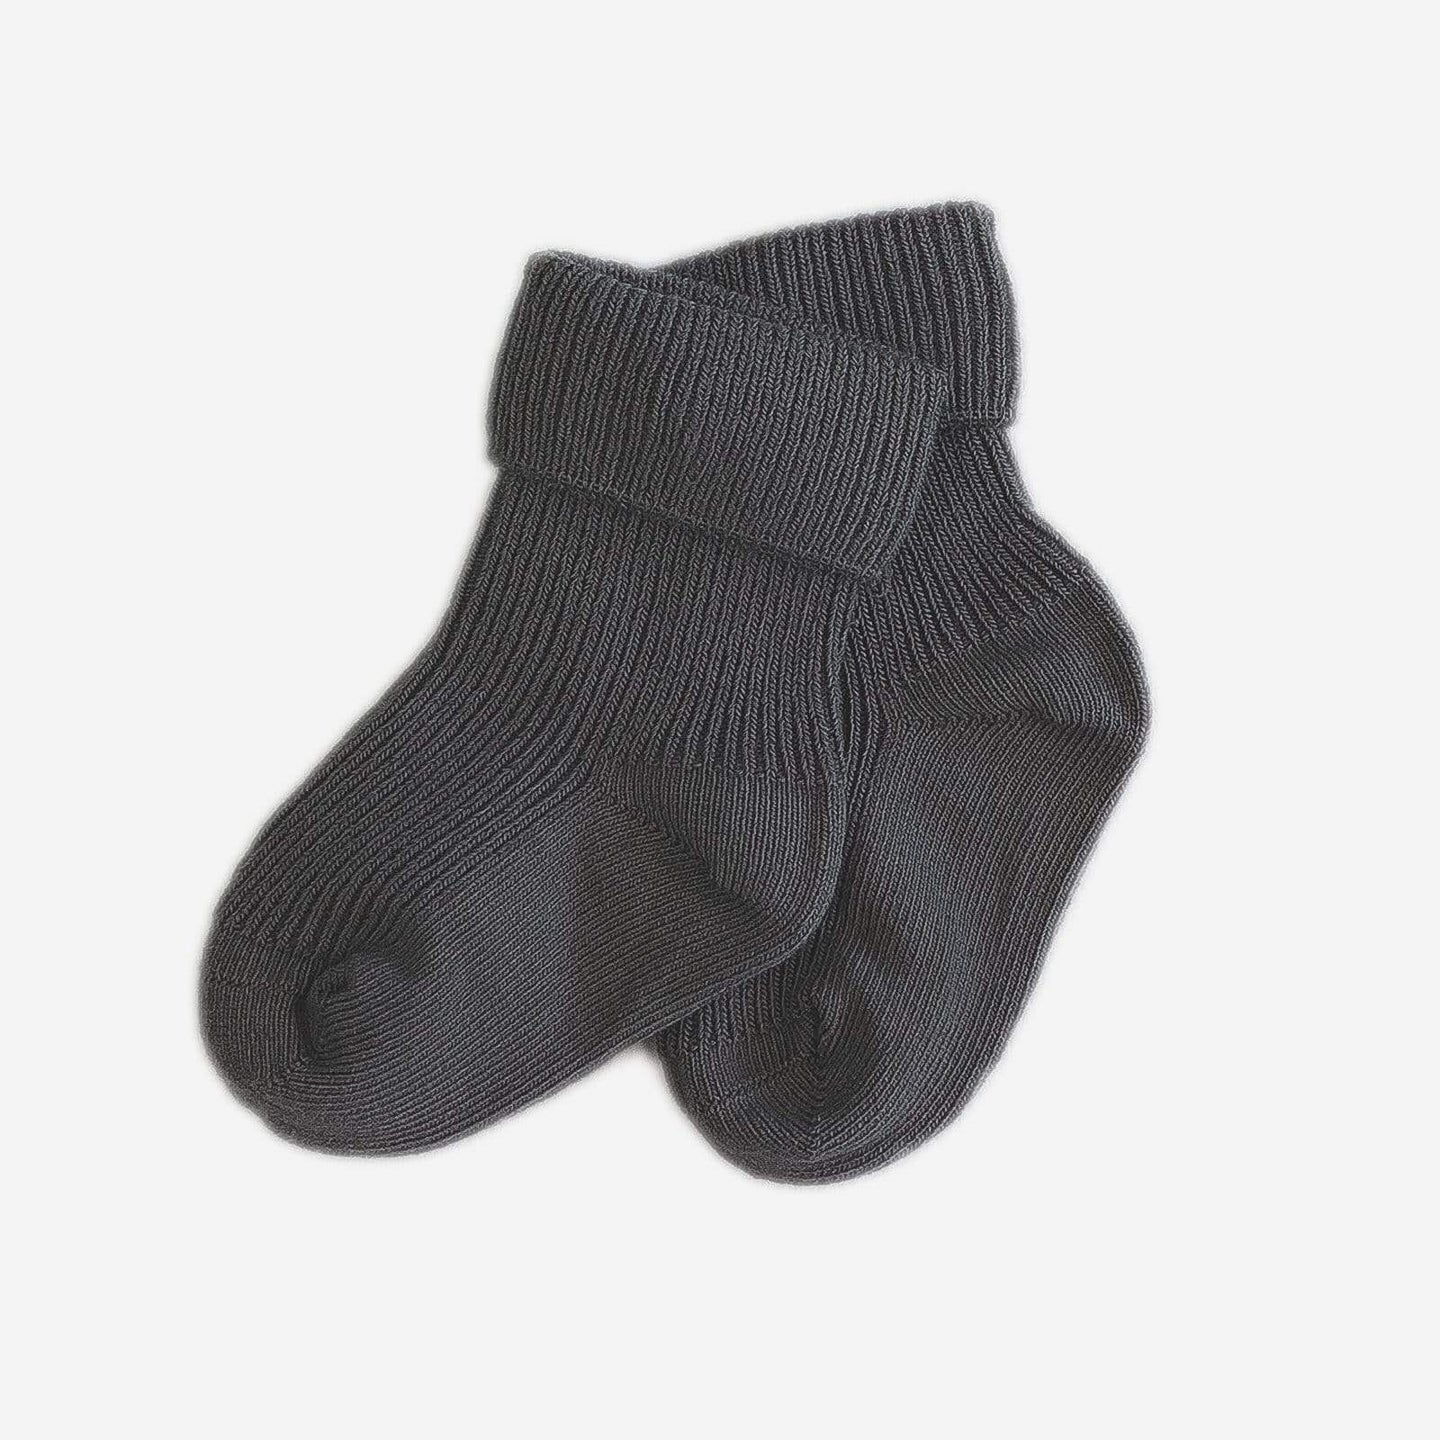 Love Henry Accessories 0-3 Months Baby Classic Cuff Socks - Charcoal